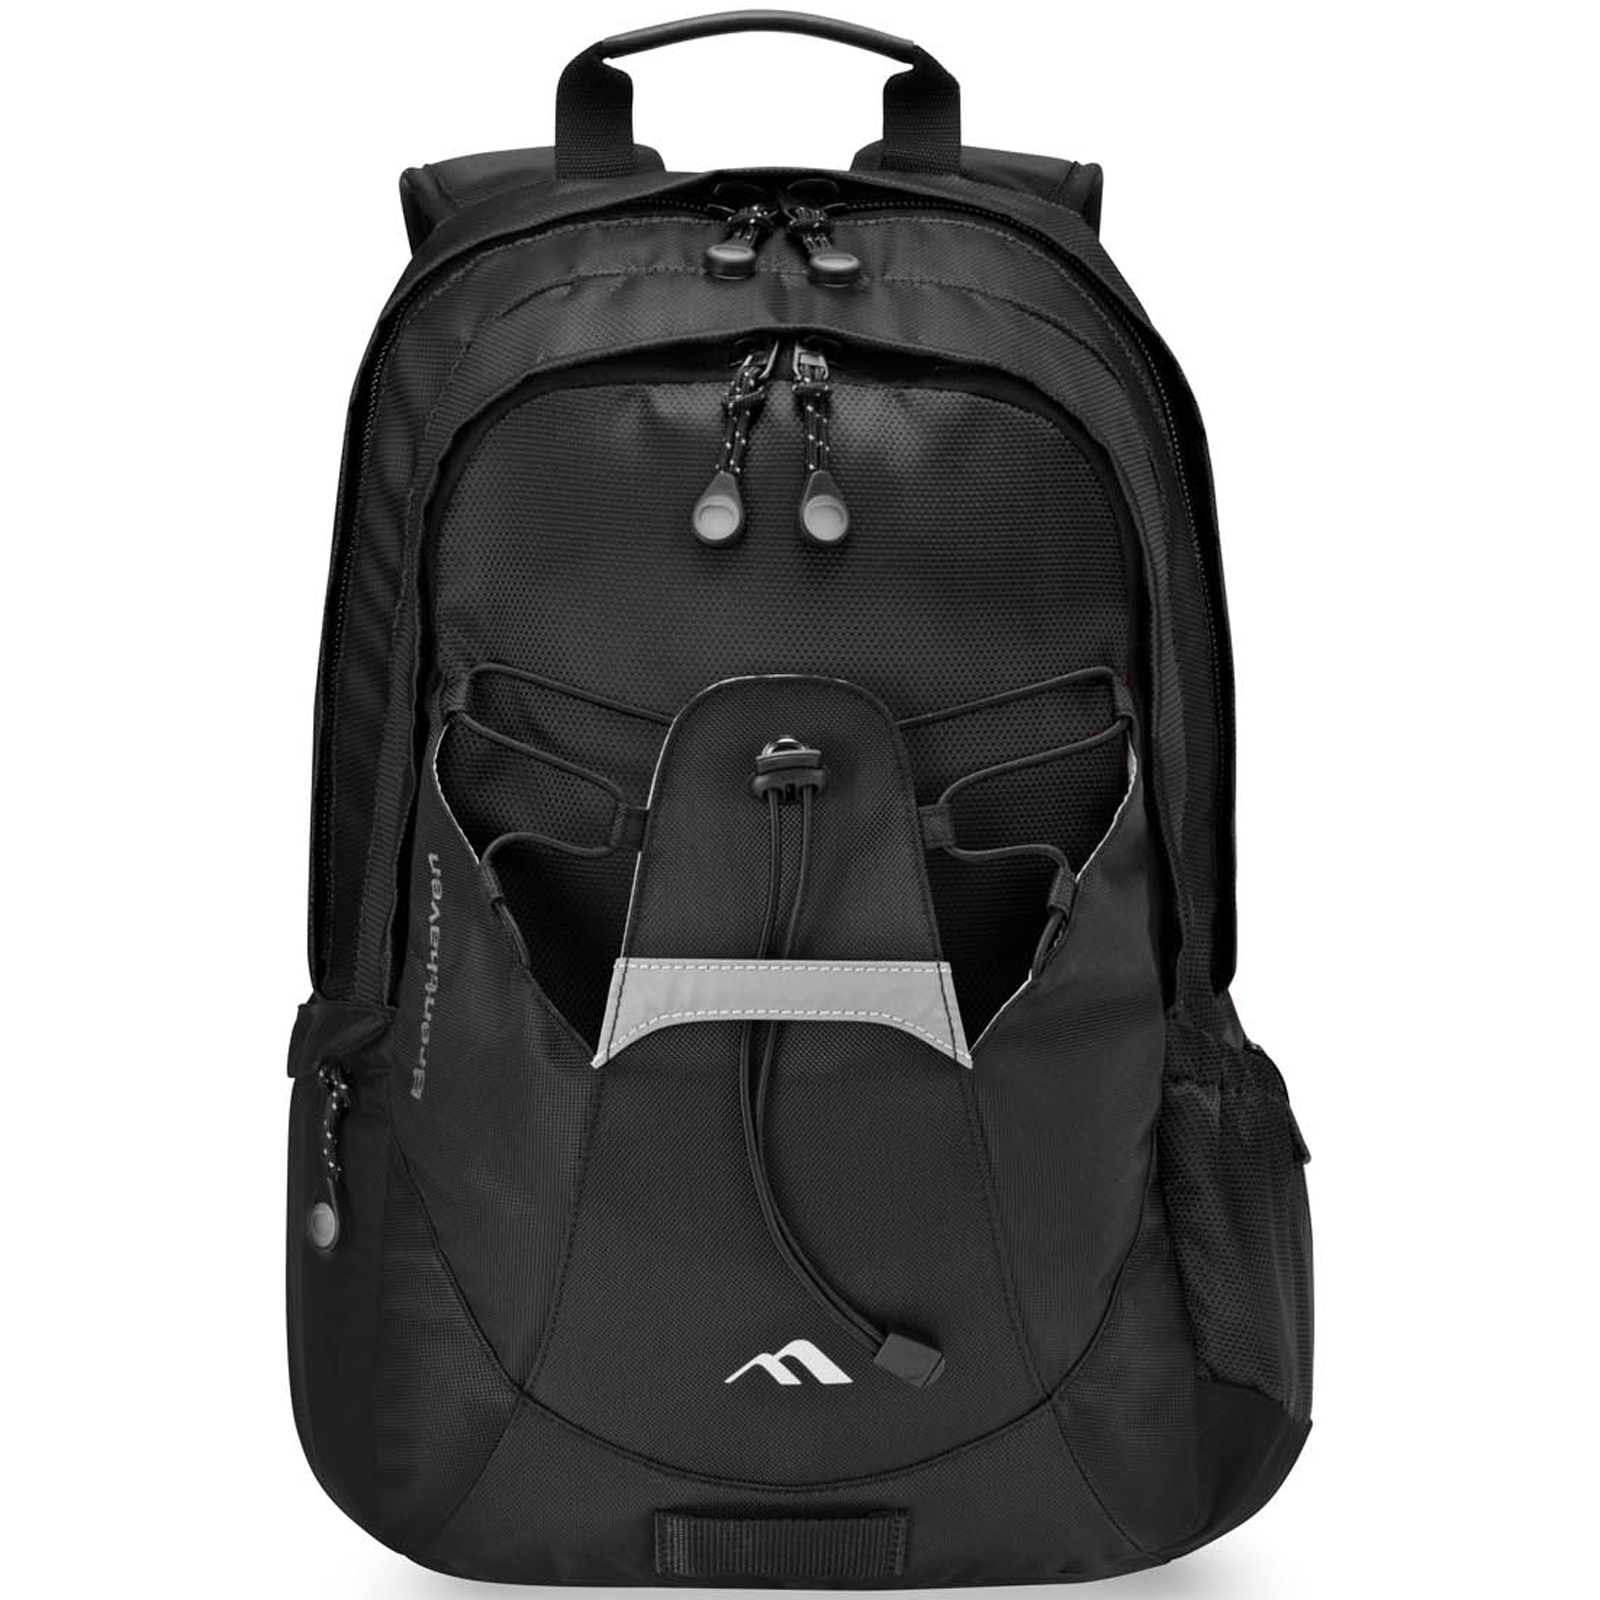 Amazon.com: BACKPACK de BRENTHAVEN modelo PACIFIC color Black: Health & Personal Care